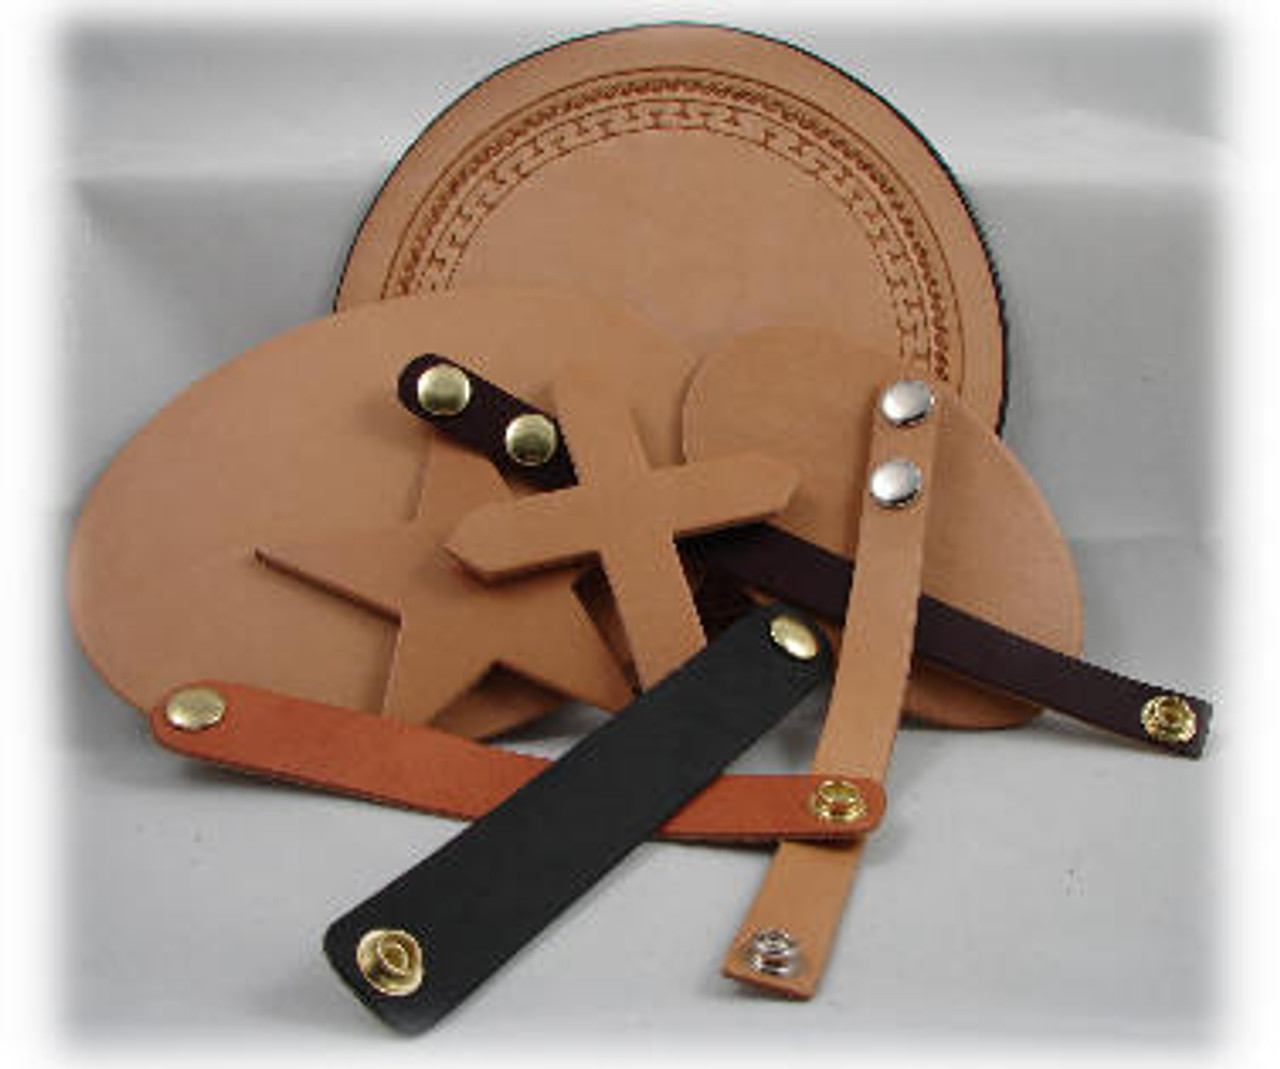 Rich Tan Leather Wrist Band, 1-1/2 inch Wide x 8-1/2 inch long